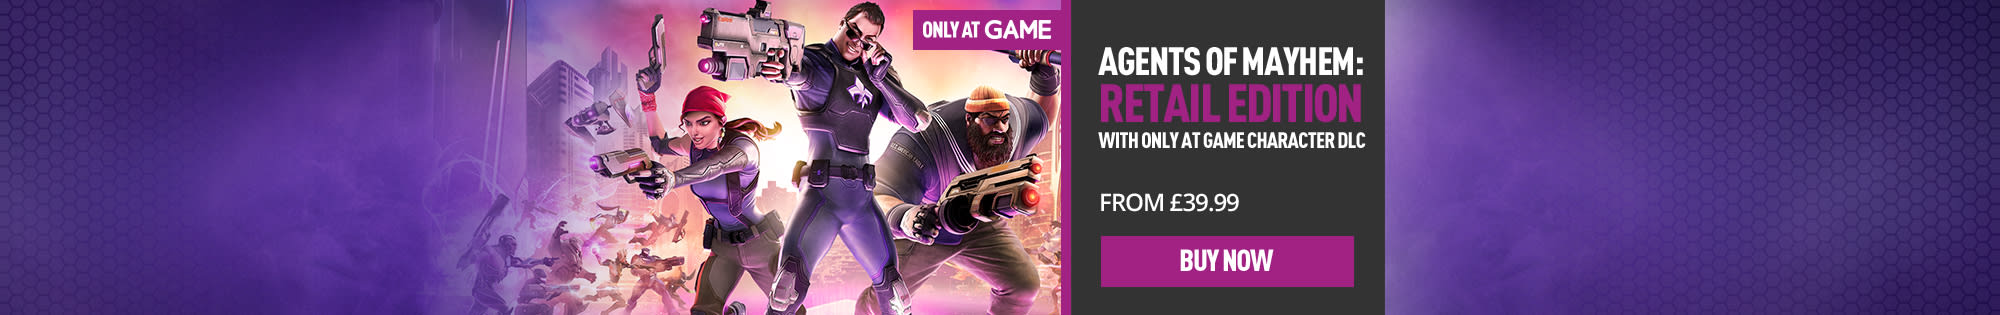 Pre-order Agents of Mayhem now! - Homepage Banner